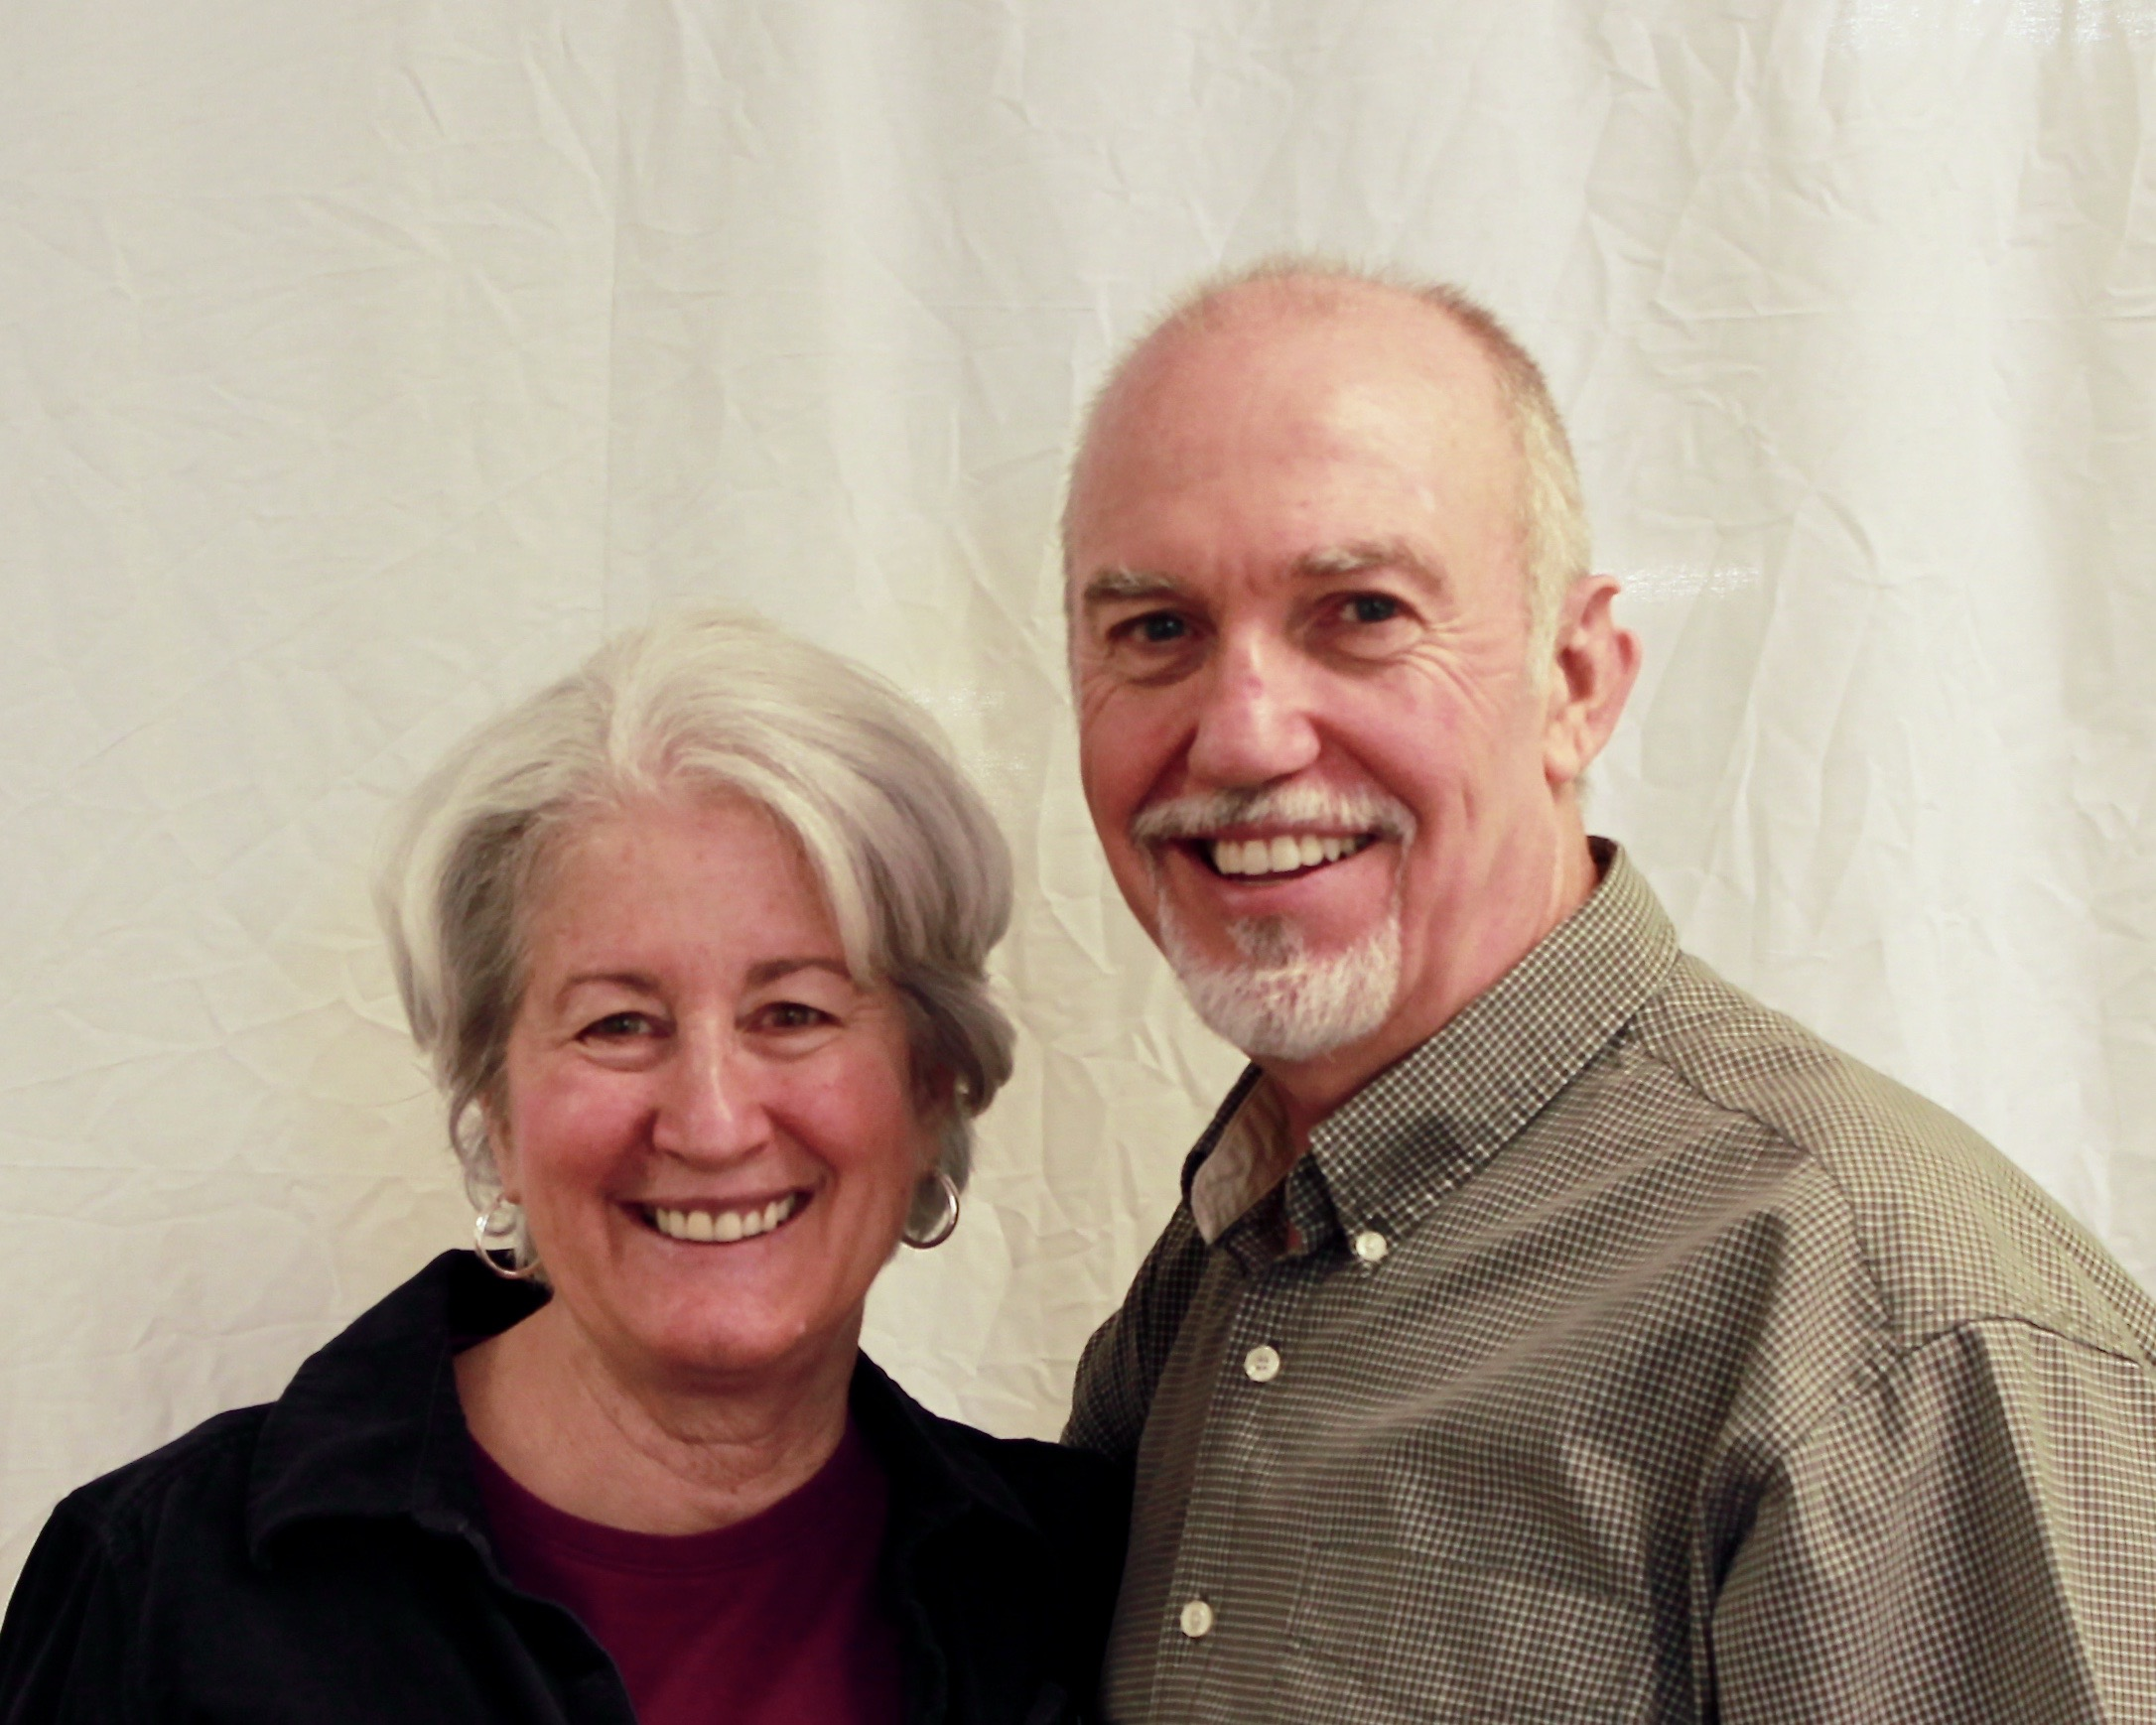 Cathy and Steve Marlett